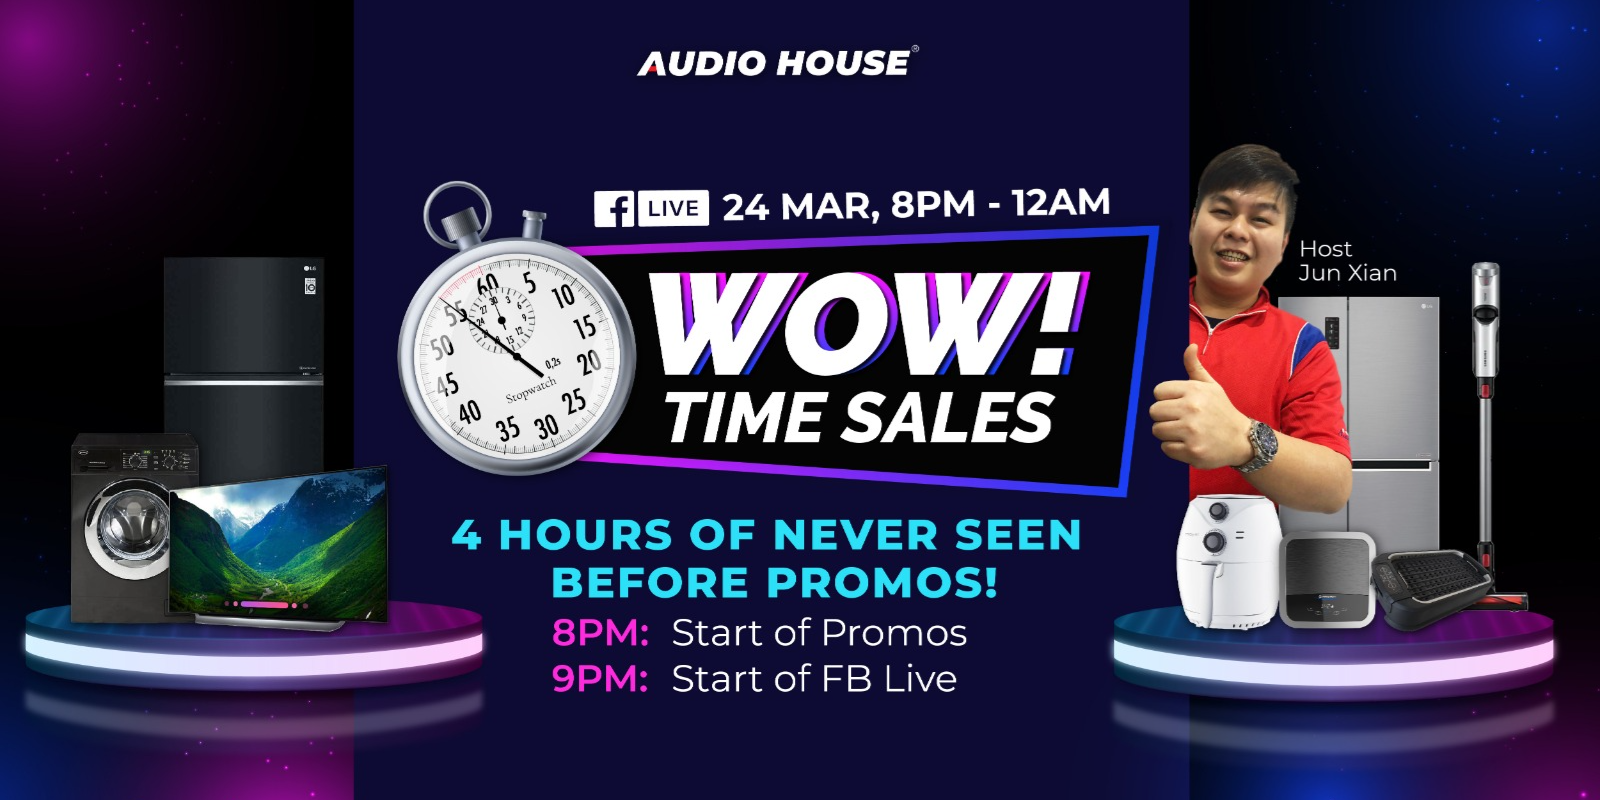 Audio House Wow! Time Sales